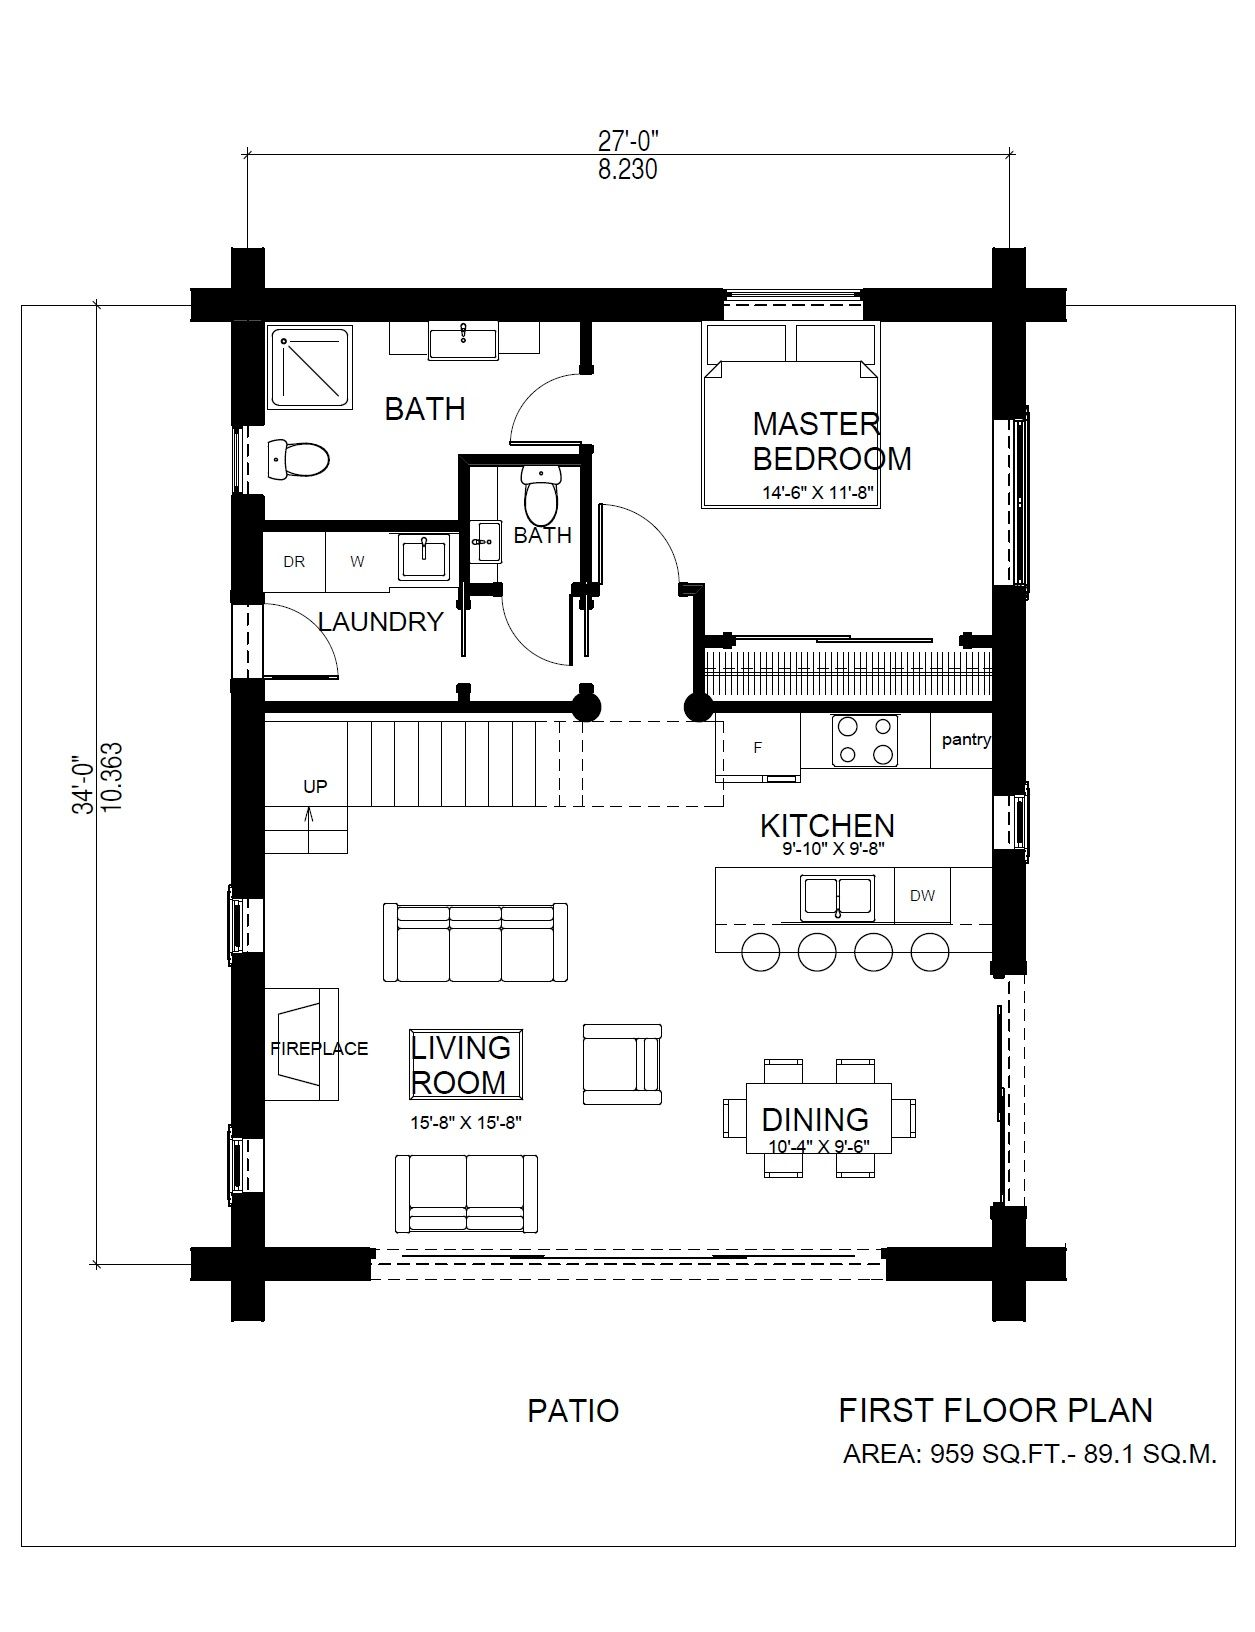 A Log Cabin Plan Very Similar To The Original Horseshoe Bay Log Cabin This Variation Shows How A Few Changes Ca Cabin Floor Plans Floor Plans Log Cabin Plans